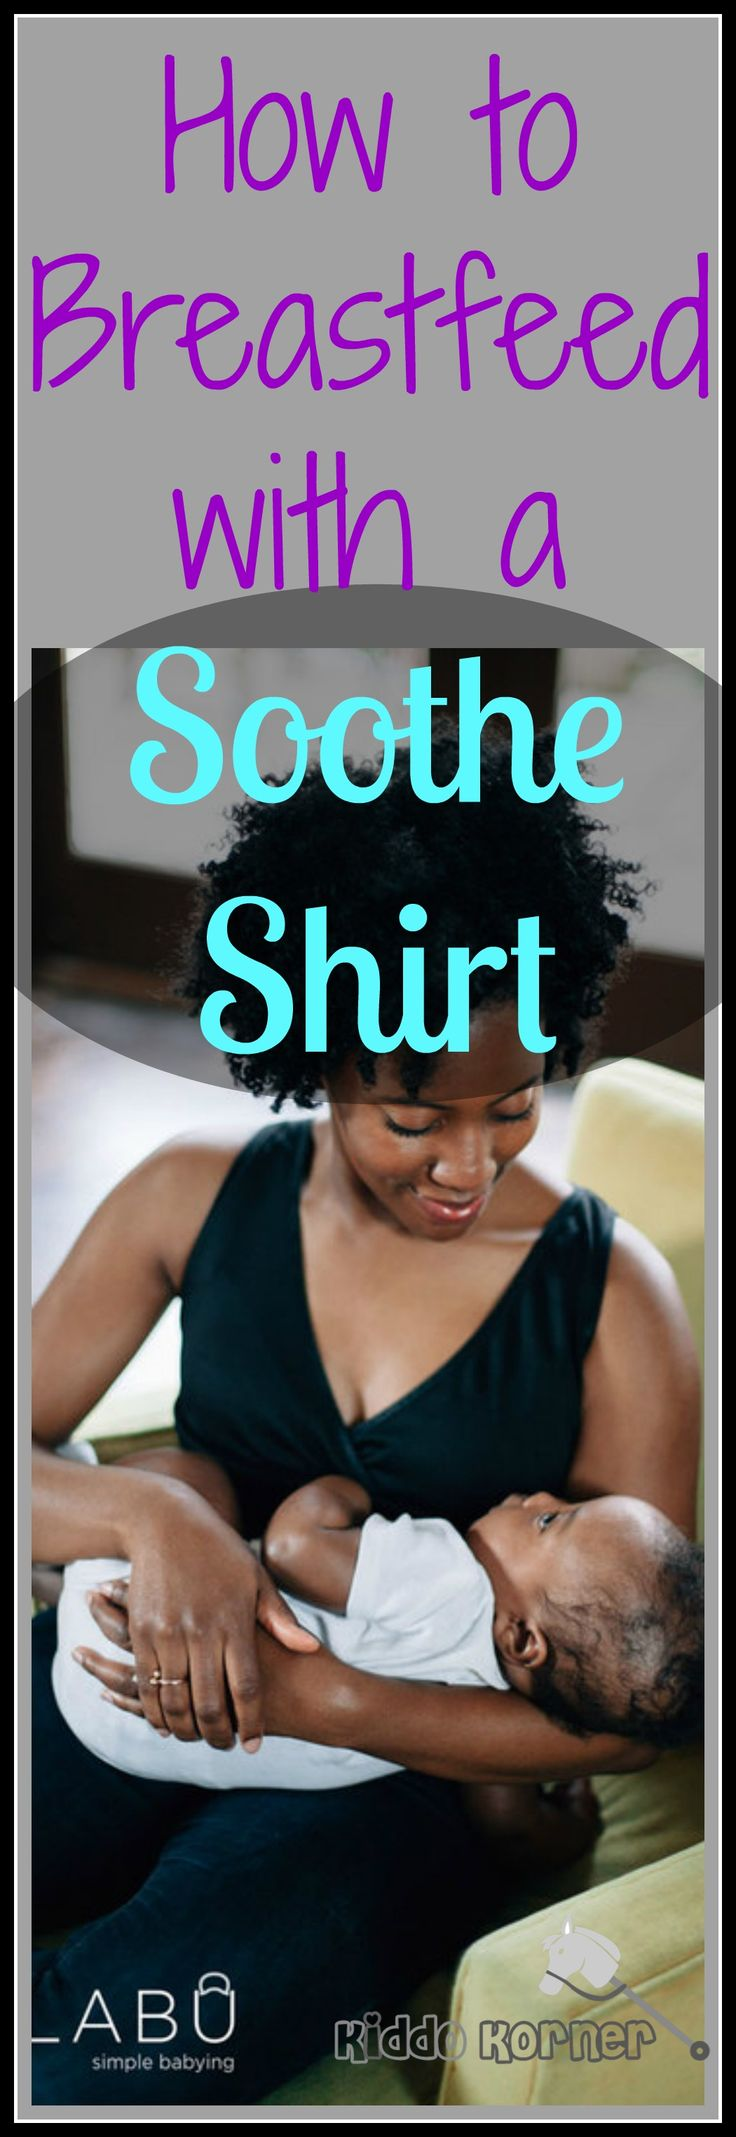 Click here to learn how to breastfeed with a Lalabu Soothe Shirt: http://kiddokorner.com/blog/how-to-breastfeed-with-a-soothe-shirt.html